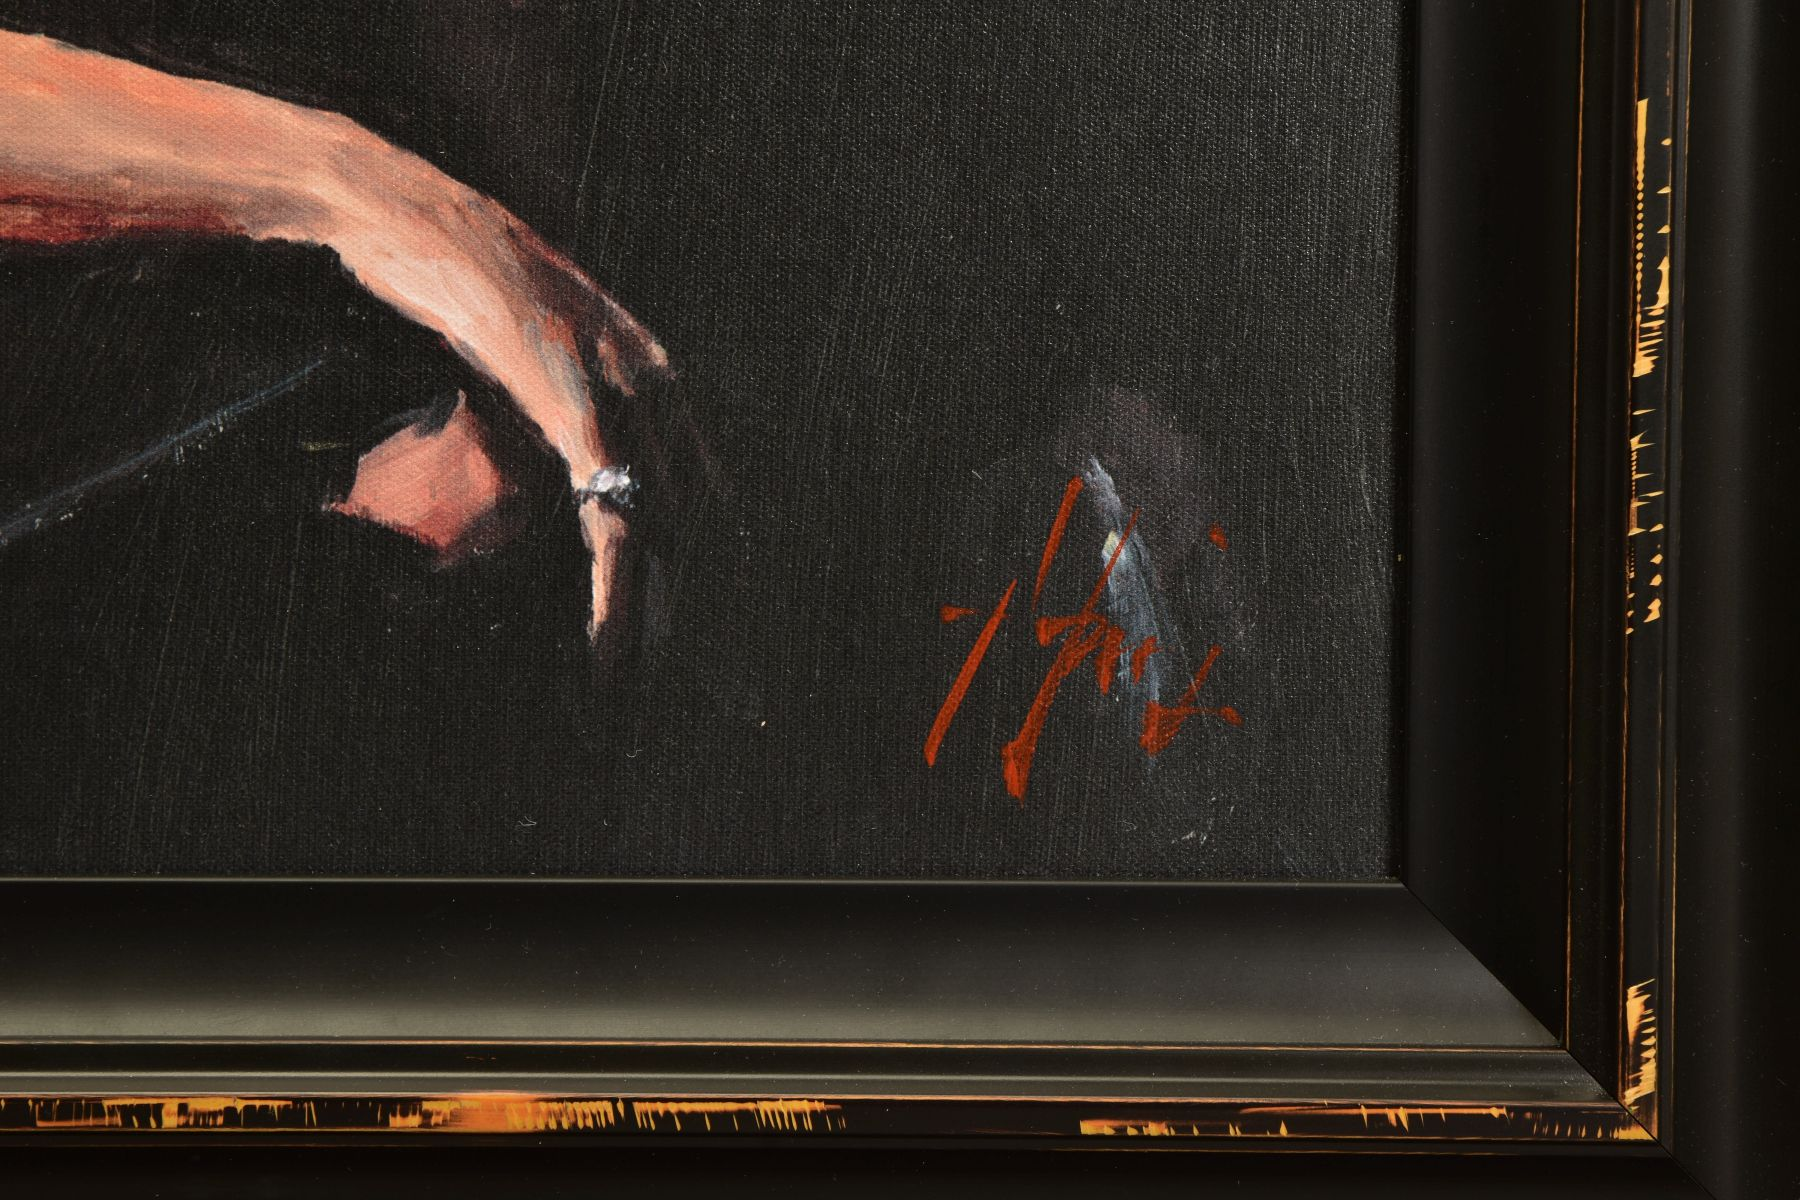 FABIAN PEREZ (ARGENTINA 1967) 'PROPOSAL AT HOTEL DU VIN', a limited edition print 36/95, male and - Image 3 of 8